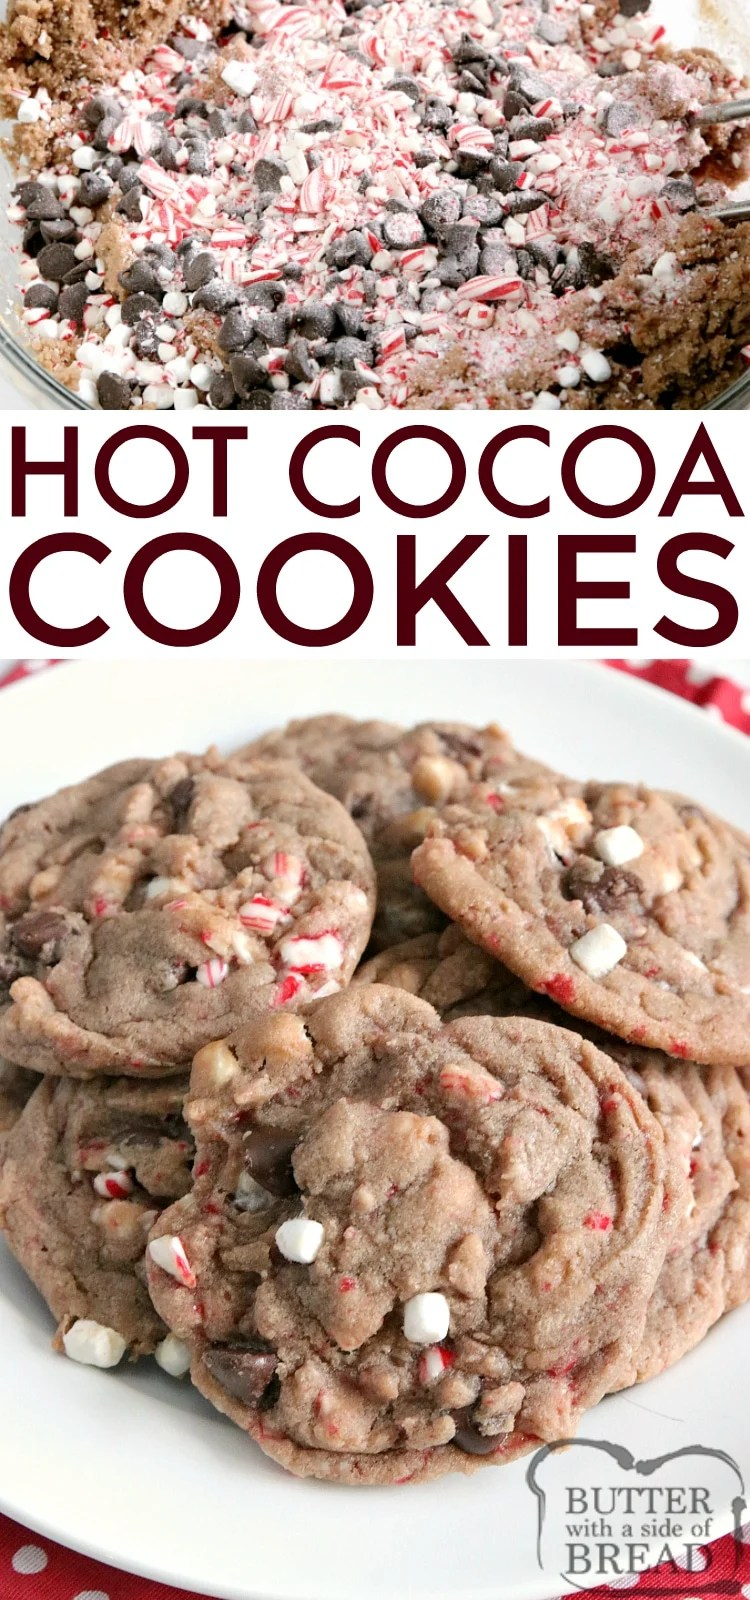 Hot Cocoa Cookies are full of hot cocoa mix, chocolate chips, crushed candy canes and marshmallow bits all baked into one delicious cookie! These hot chocolate cookies are simple to make and taste just like your favorite cup of hot cocoa!